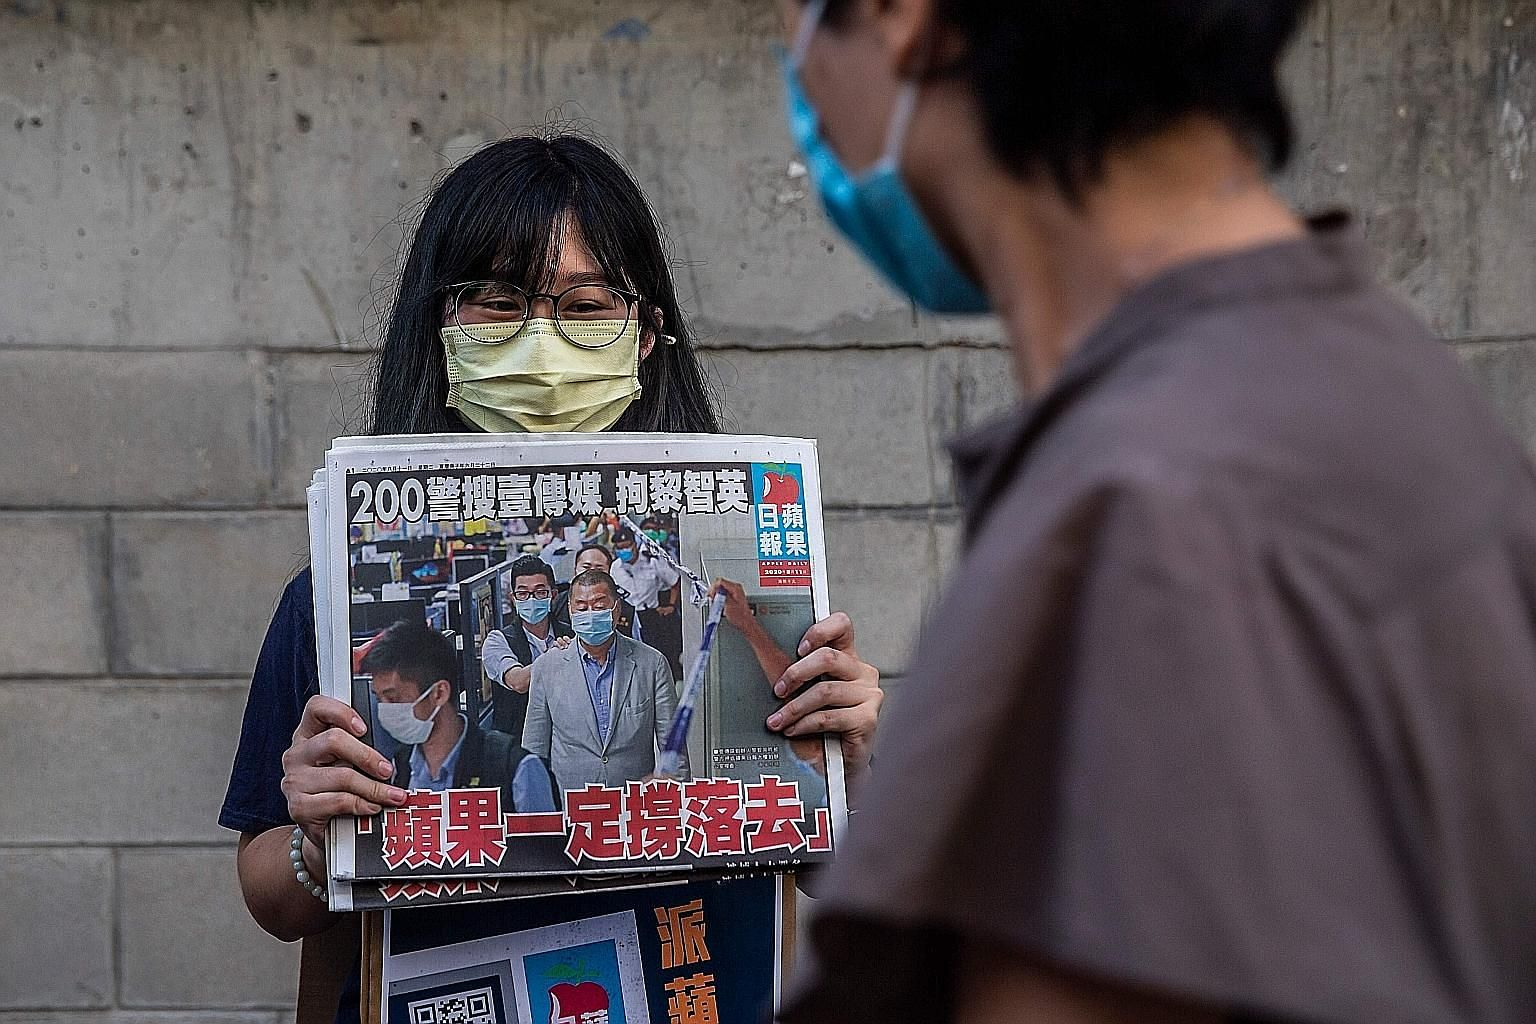 A volunteer distributing copies of the Apple Daily newspaper in Hong Kong yesterday. The newspaper's front page depicts owner Jimmy Lai being detained by police officers a day earlier. His arrest comes amid a crackdown on the pro-democracy opposition